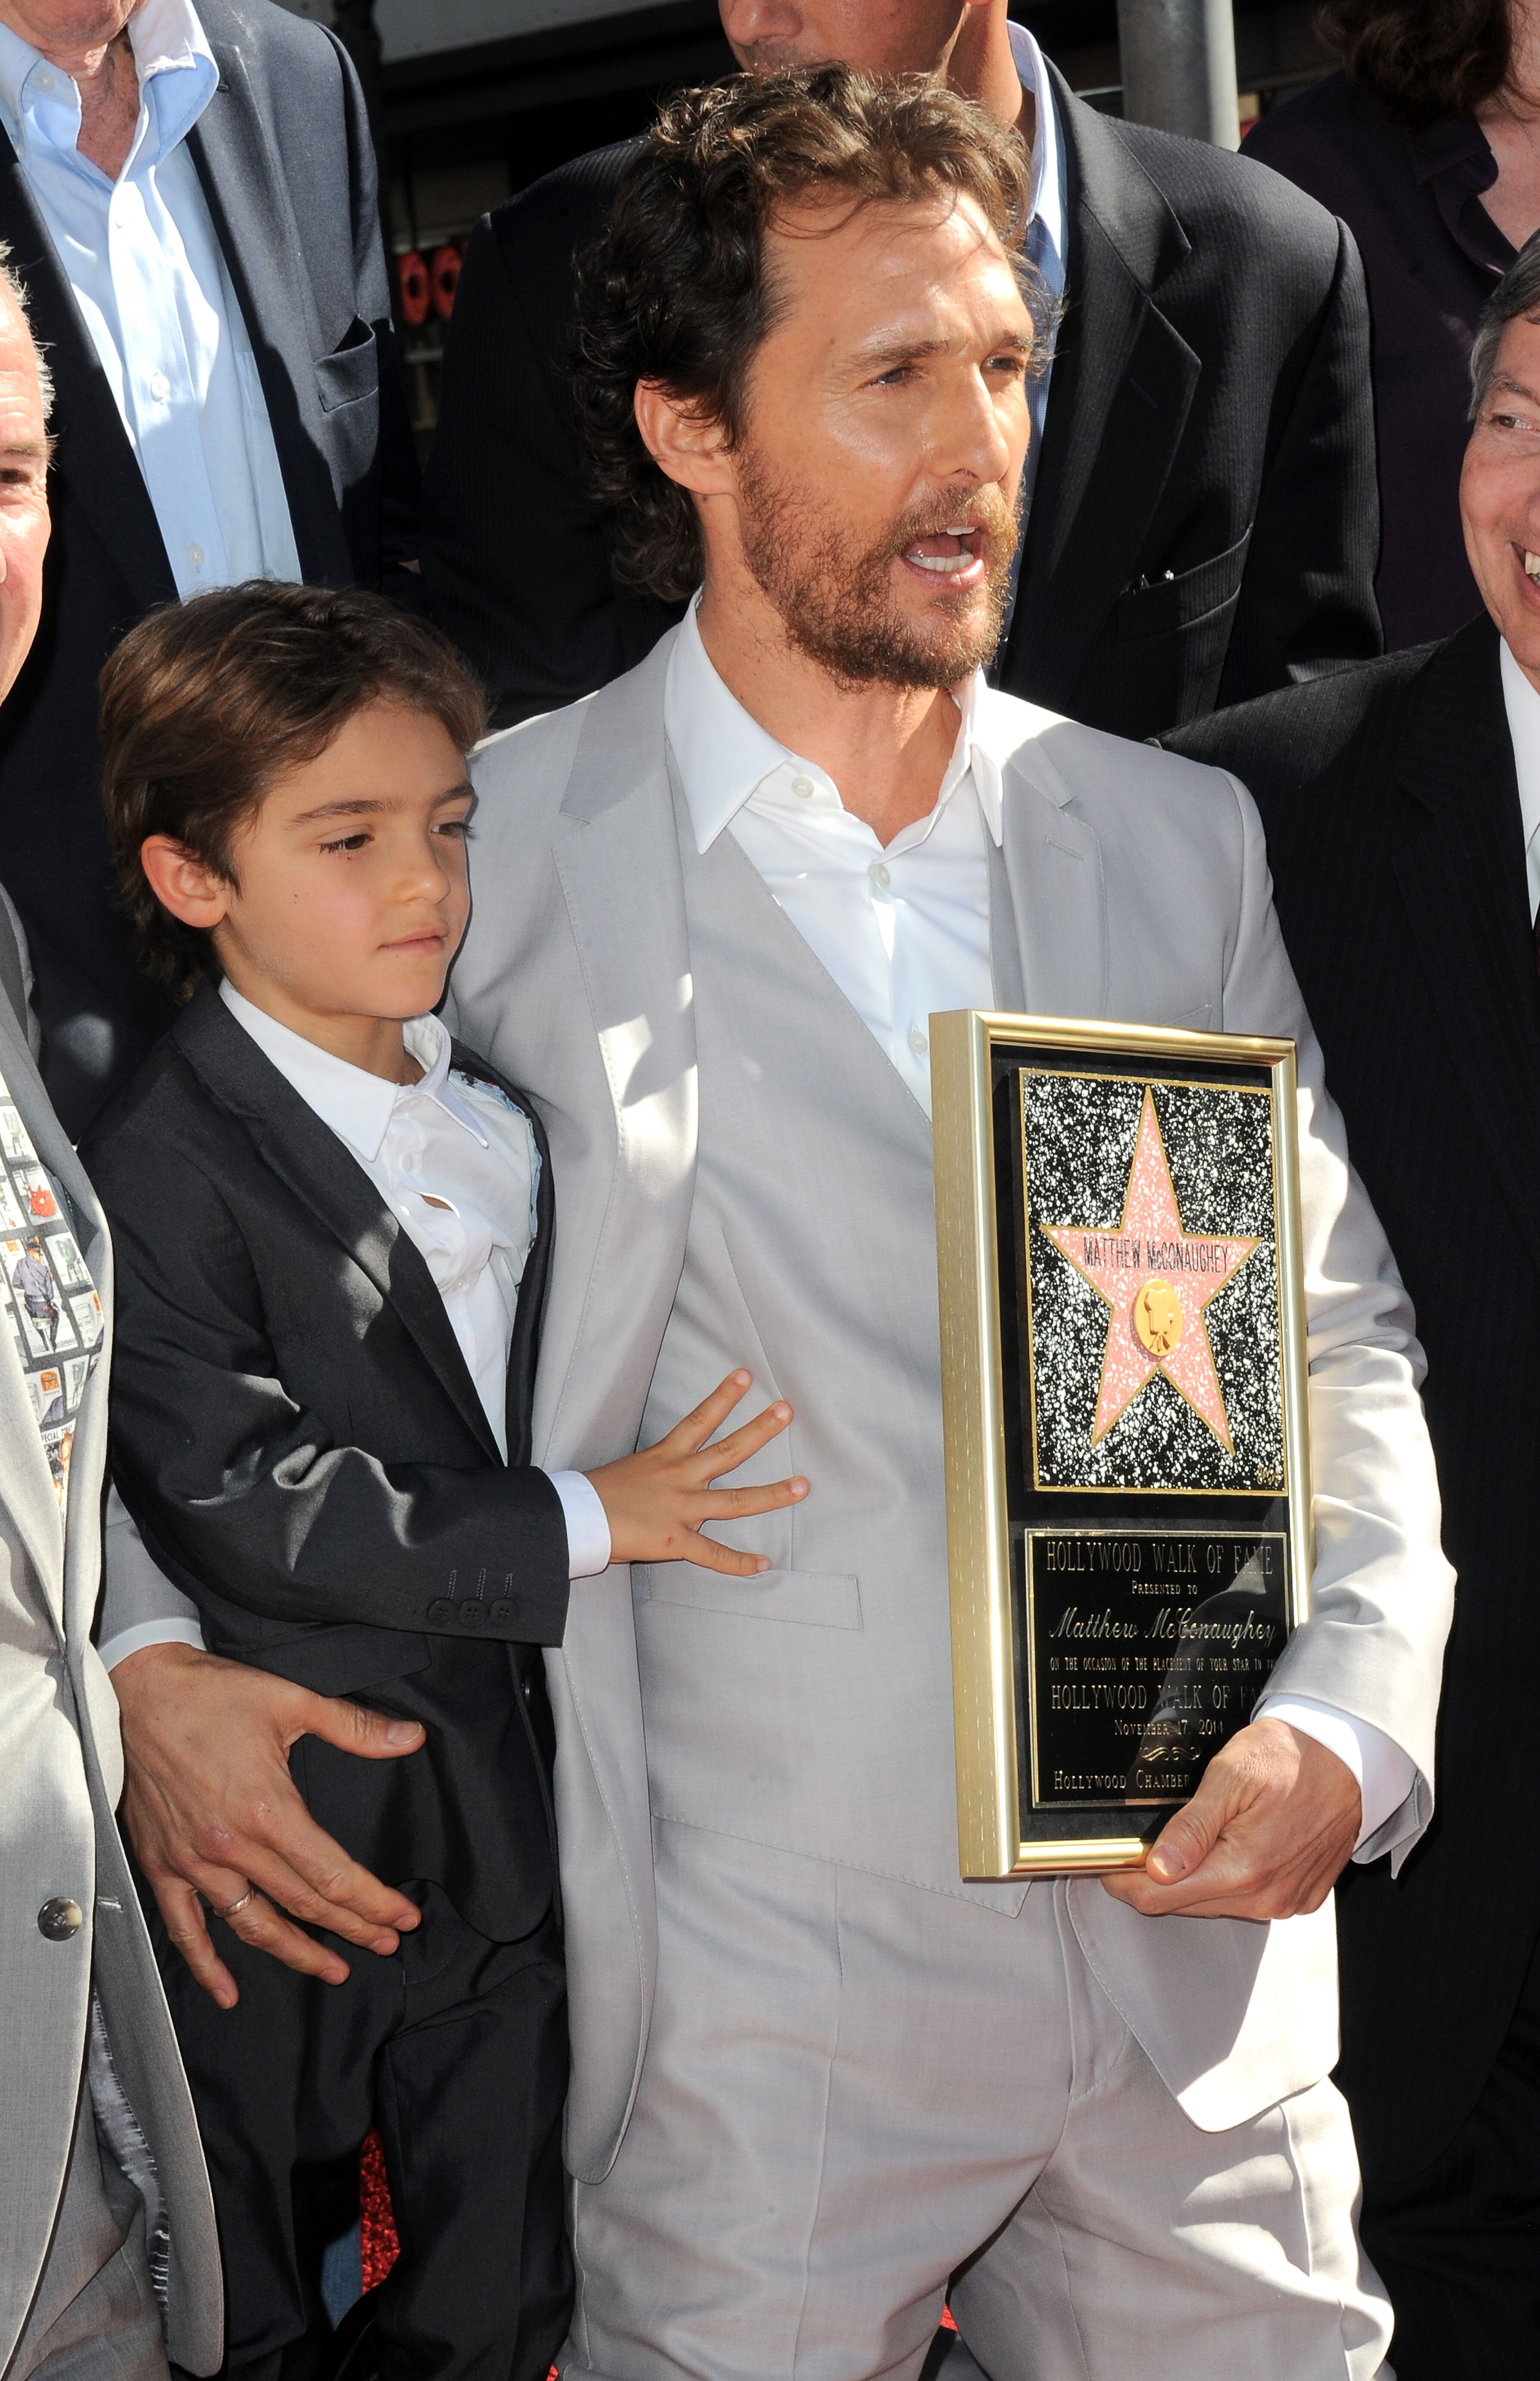 Matthew McConnaughey and son Levi at Matthew McConaughey's Star ceremony On The Hollywood Walk Of Fame on November 17, 2014 in Hollywood, California. | Source: Getty Images